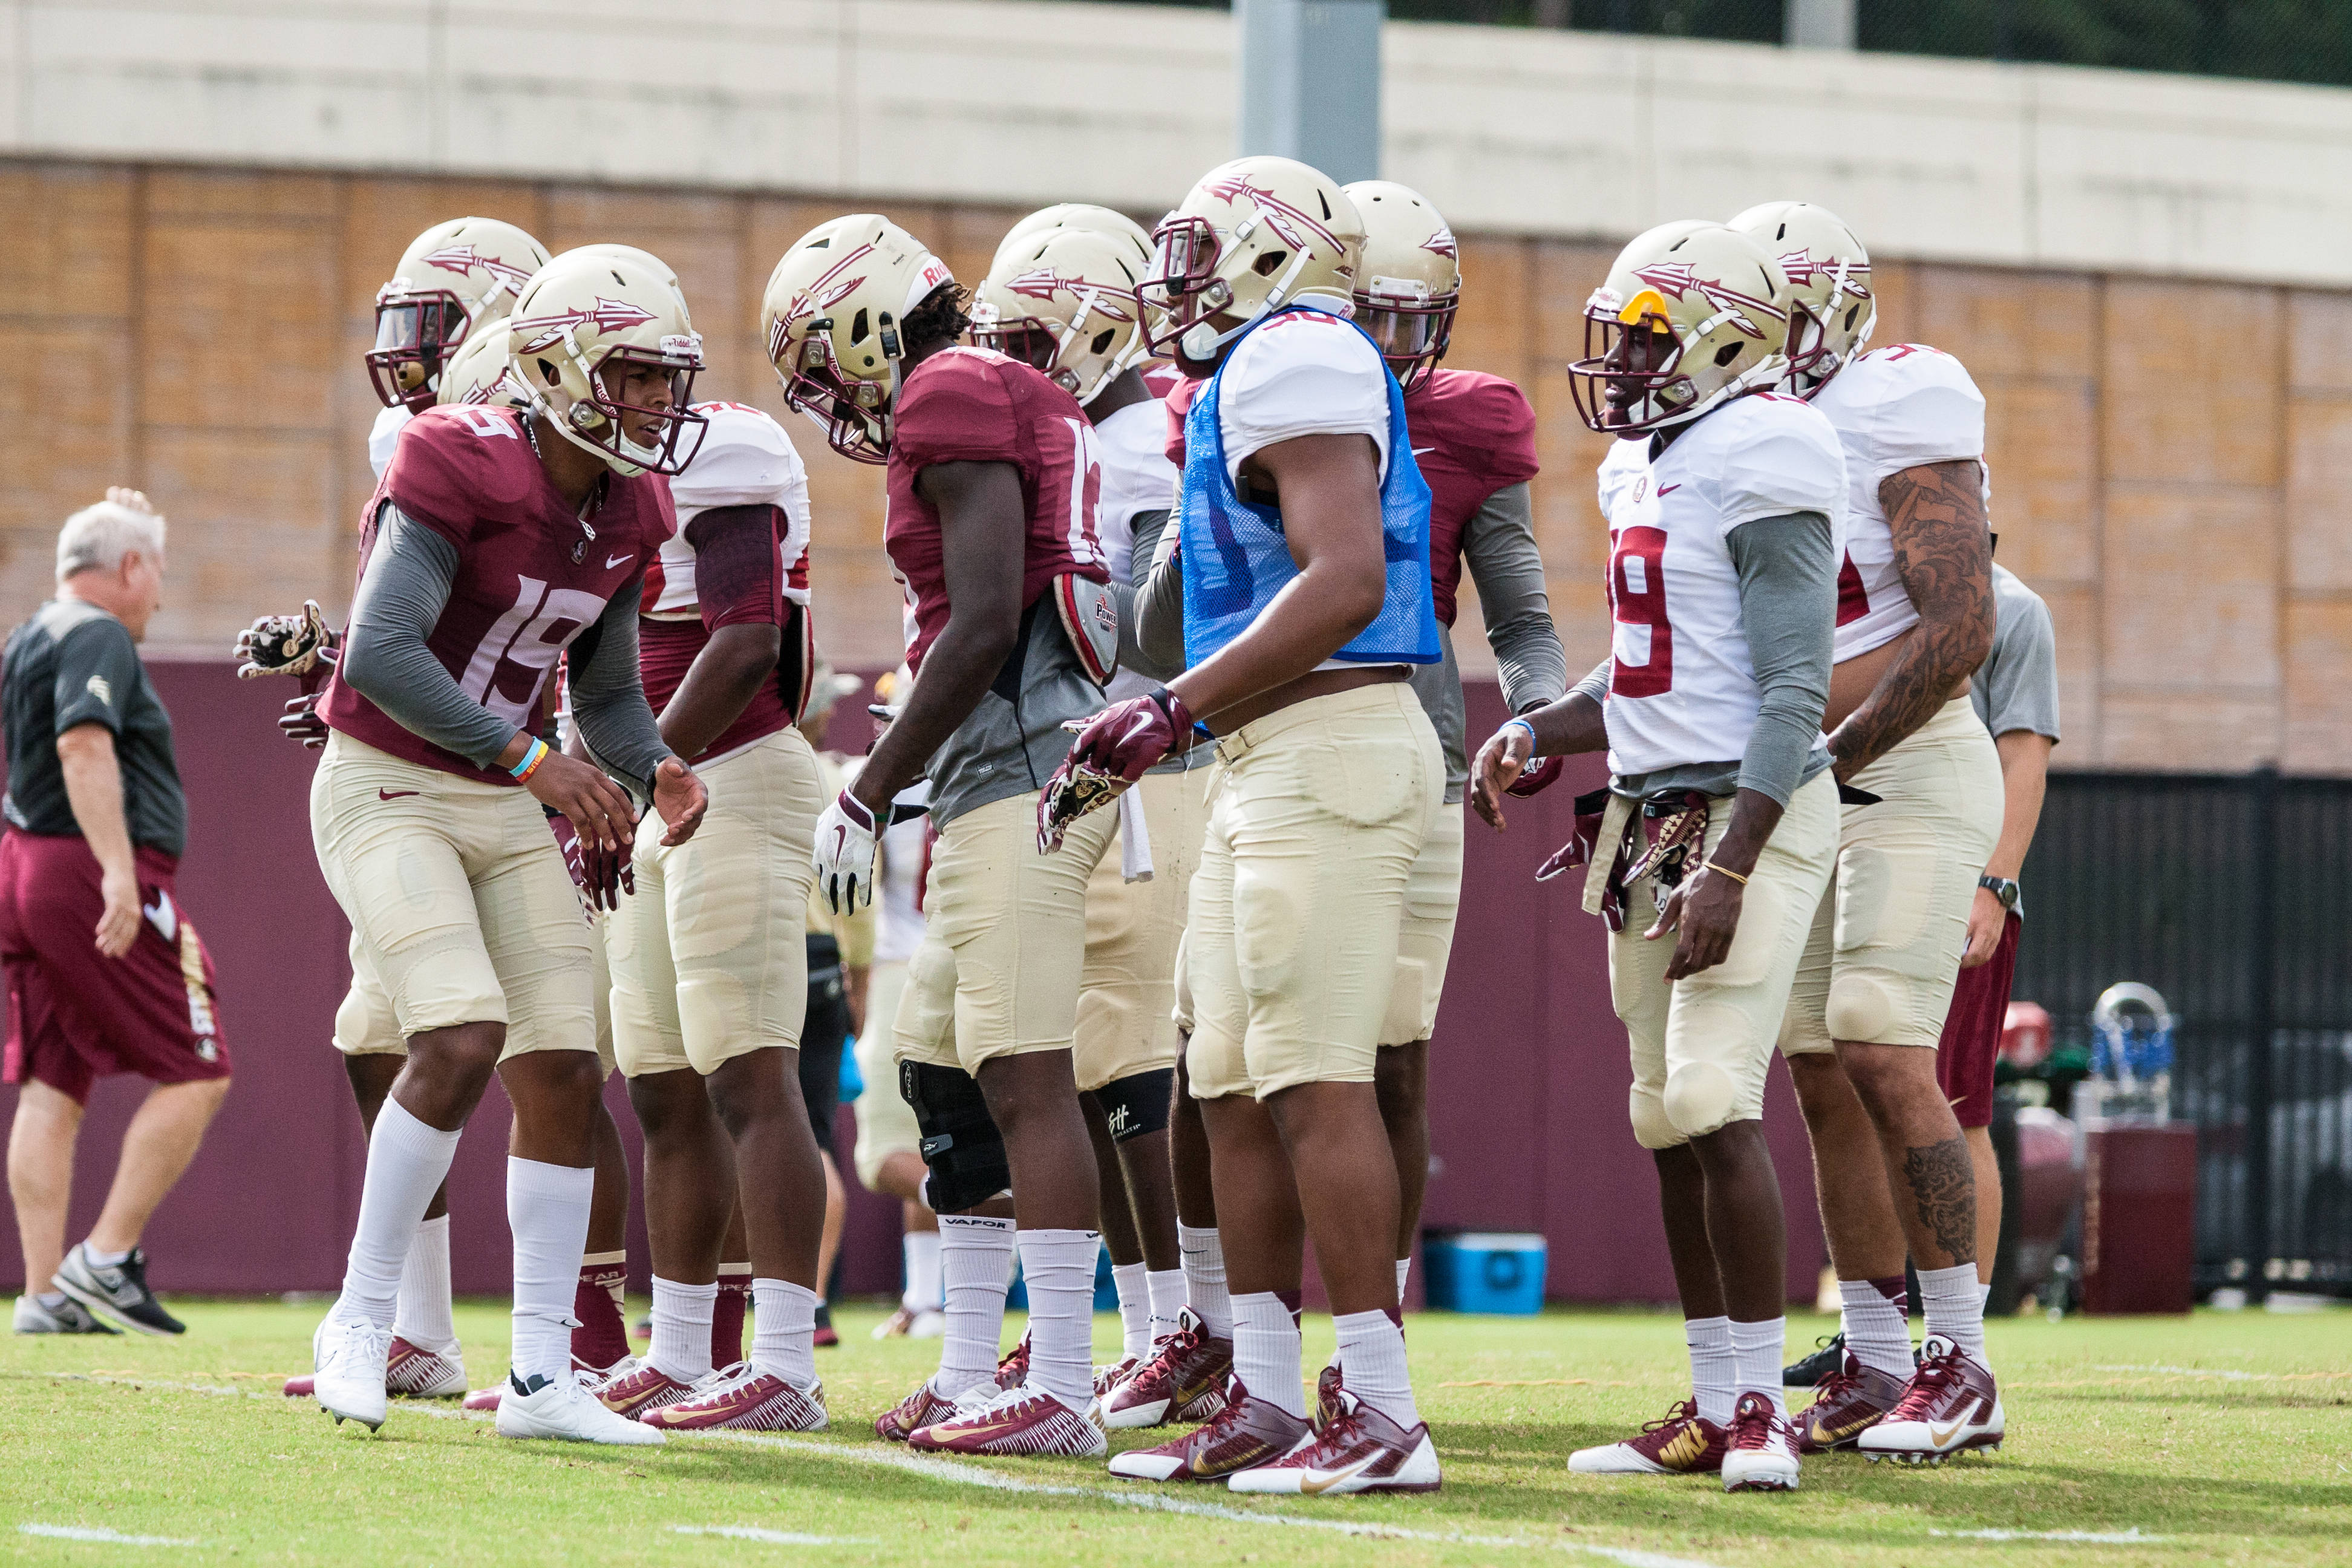 Florida State Football Practice – August 19, 2015